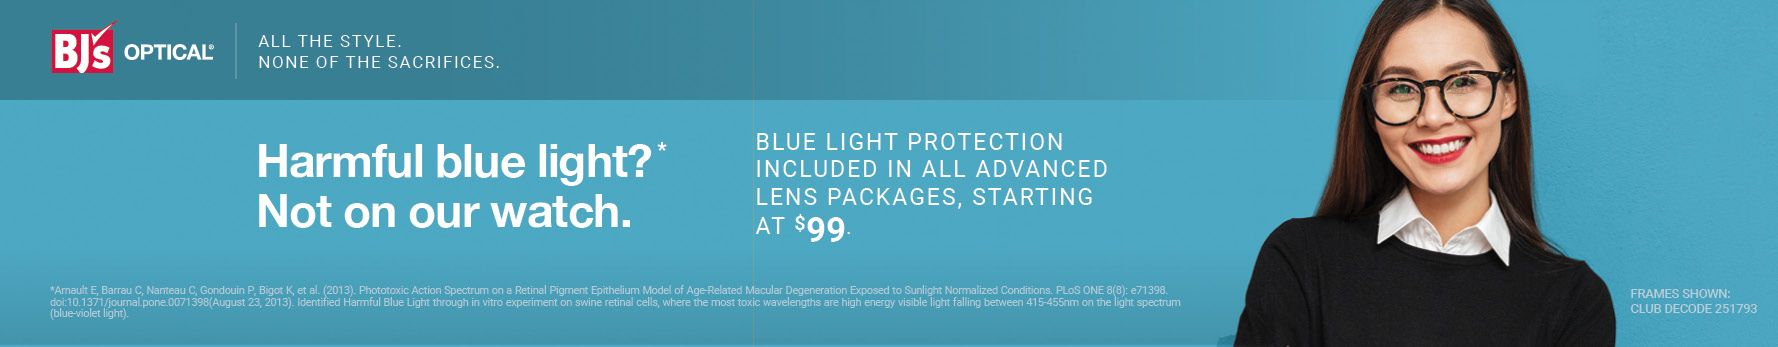 Blue light protection included in all advanced lens packages, starting at $99.